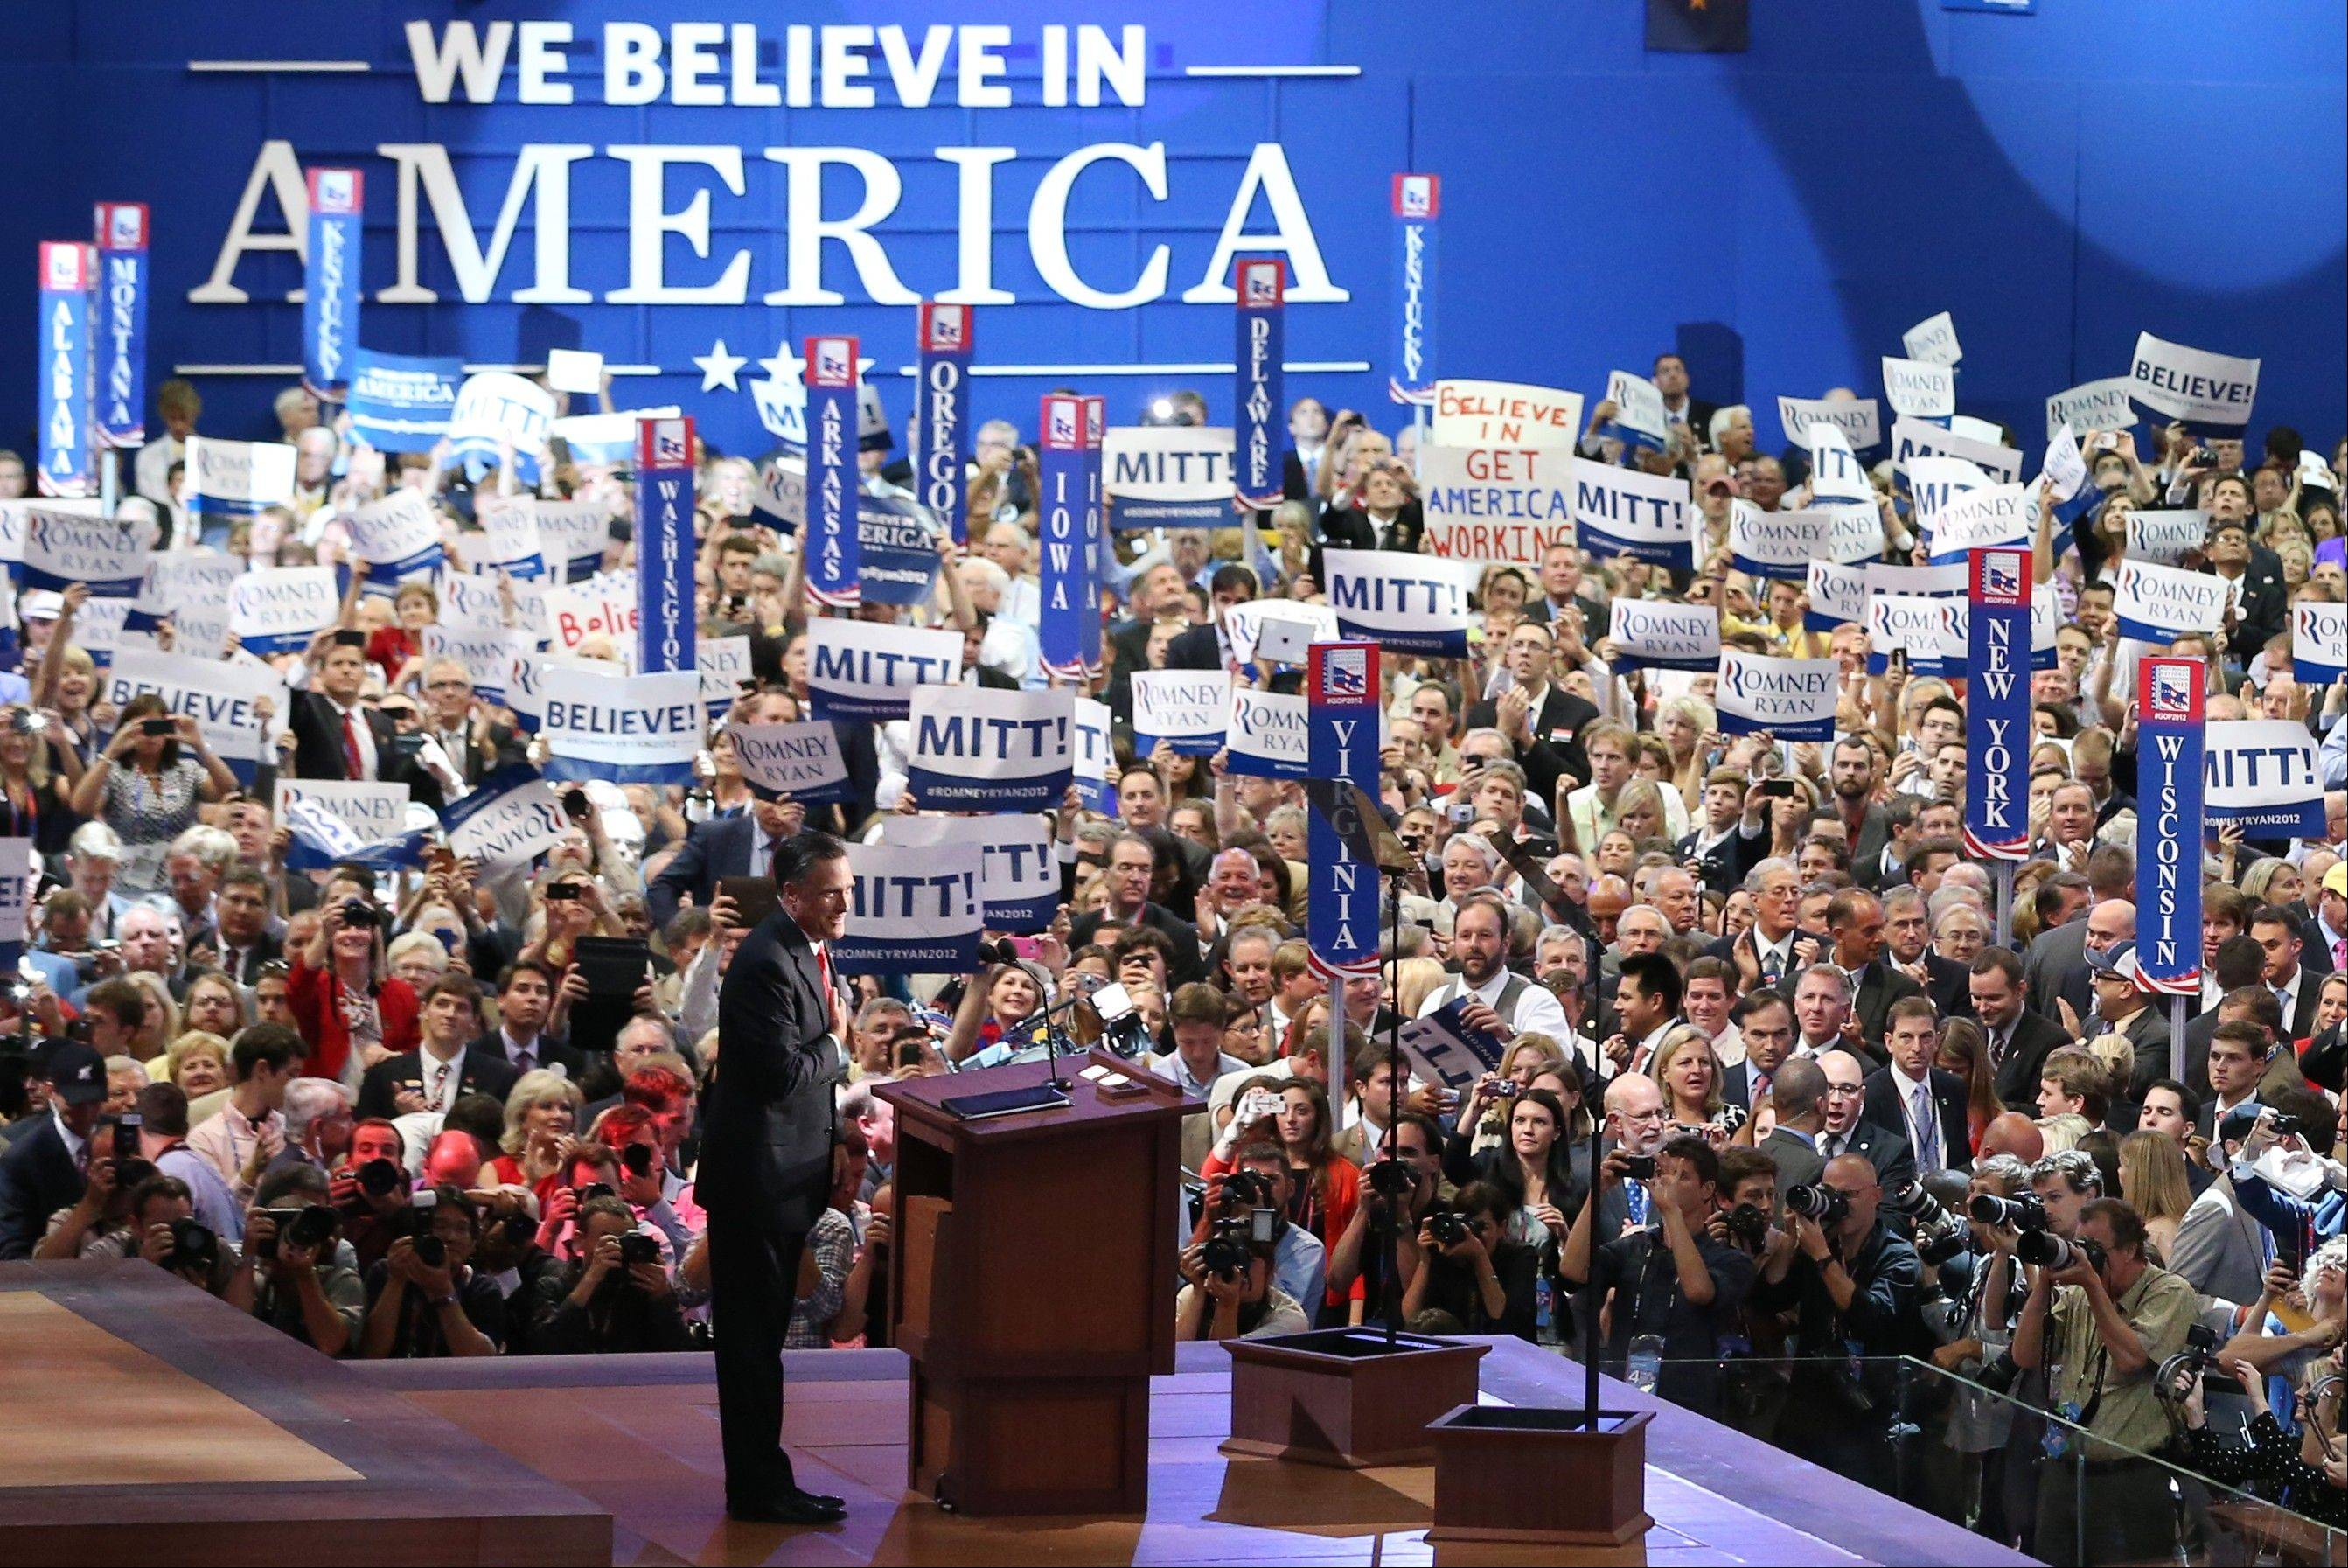 Republican presidential nominee Mitt Romney acknowledges delegates before speaking at the Republican National Convention in Tampa, Fla., on Thursday, Aug. 30, 2012.